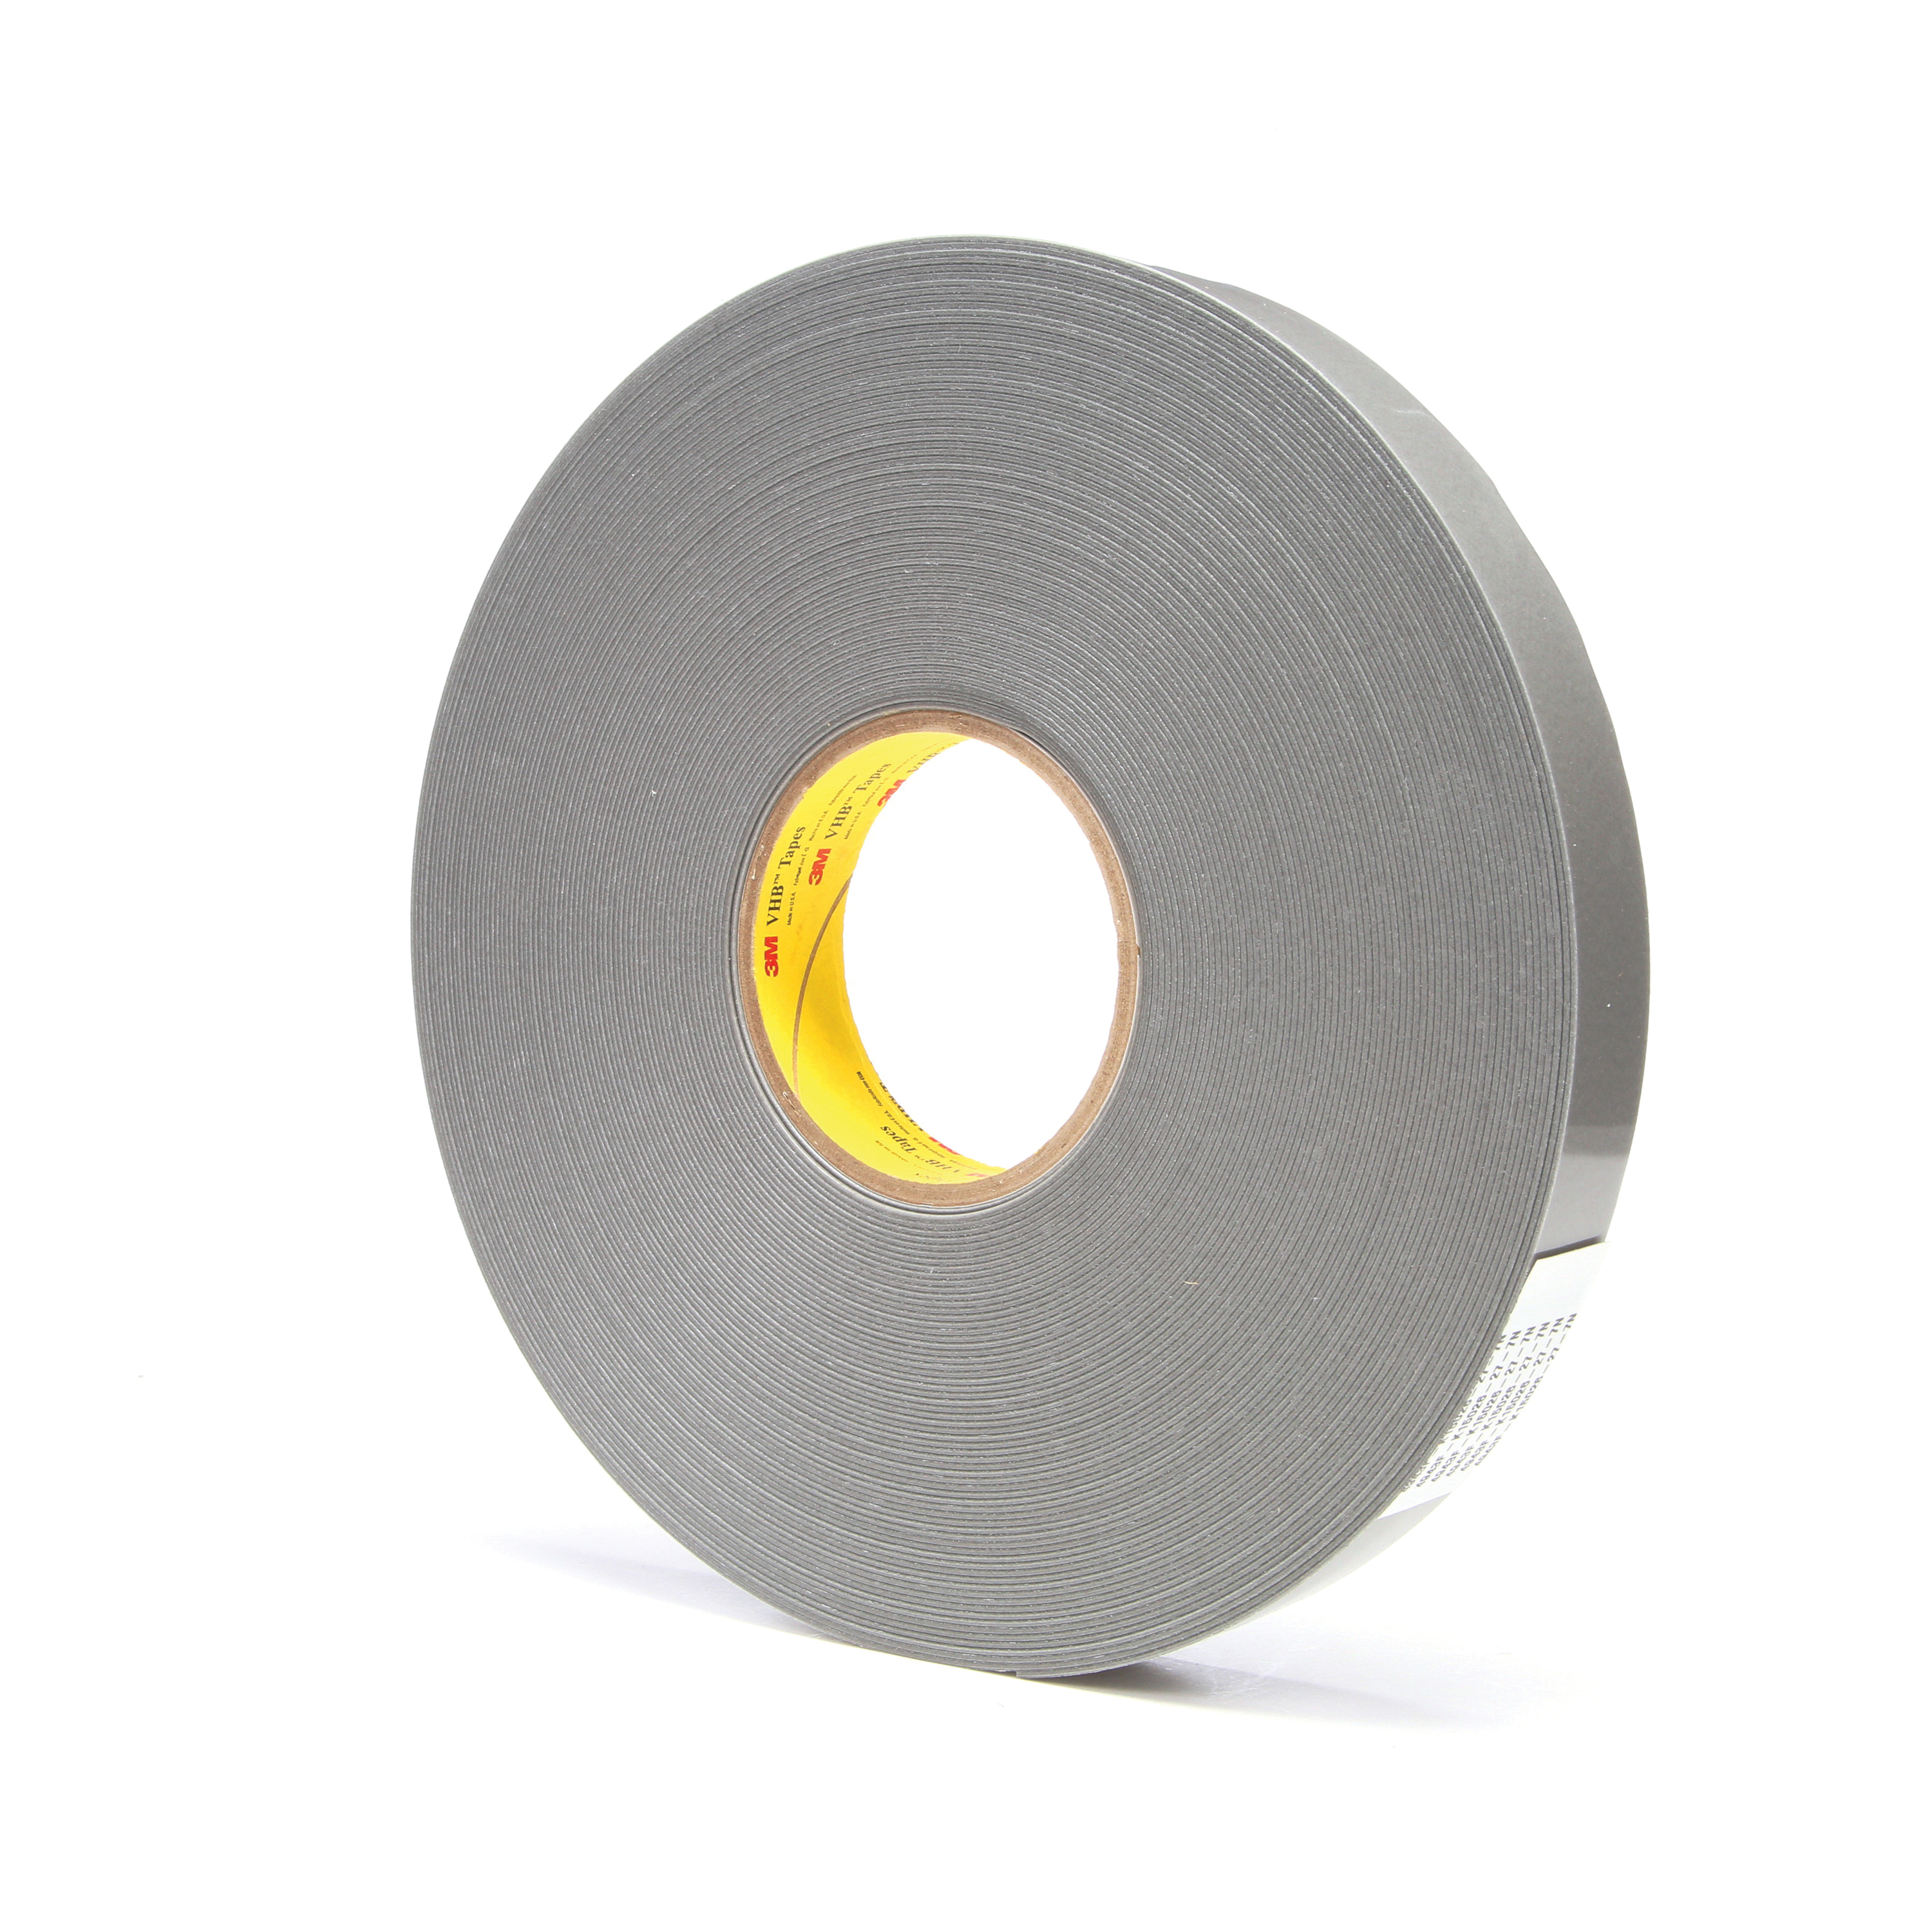 3M™ VHB™ 021200-24373 Pressure Sensitive Double Sided Bonding Tape, 36 yd L x 1 in W, 0.062 in THK, Low Temperature Acrylic Adhesive, Acrylic Foam Backing, Gray